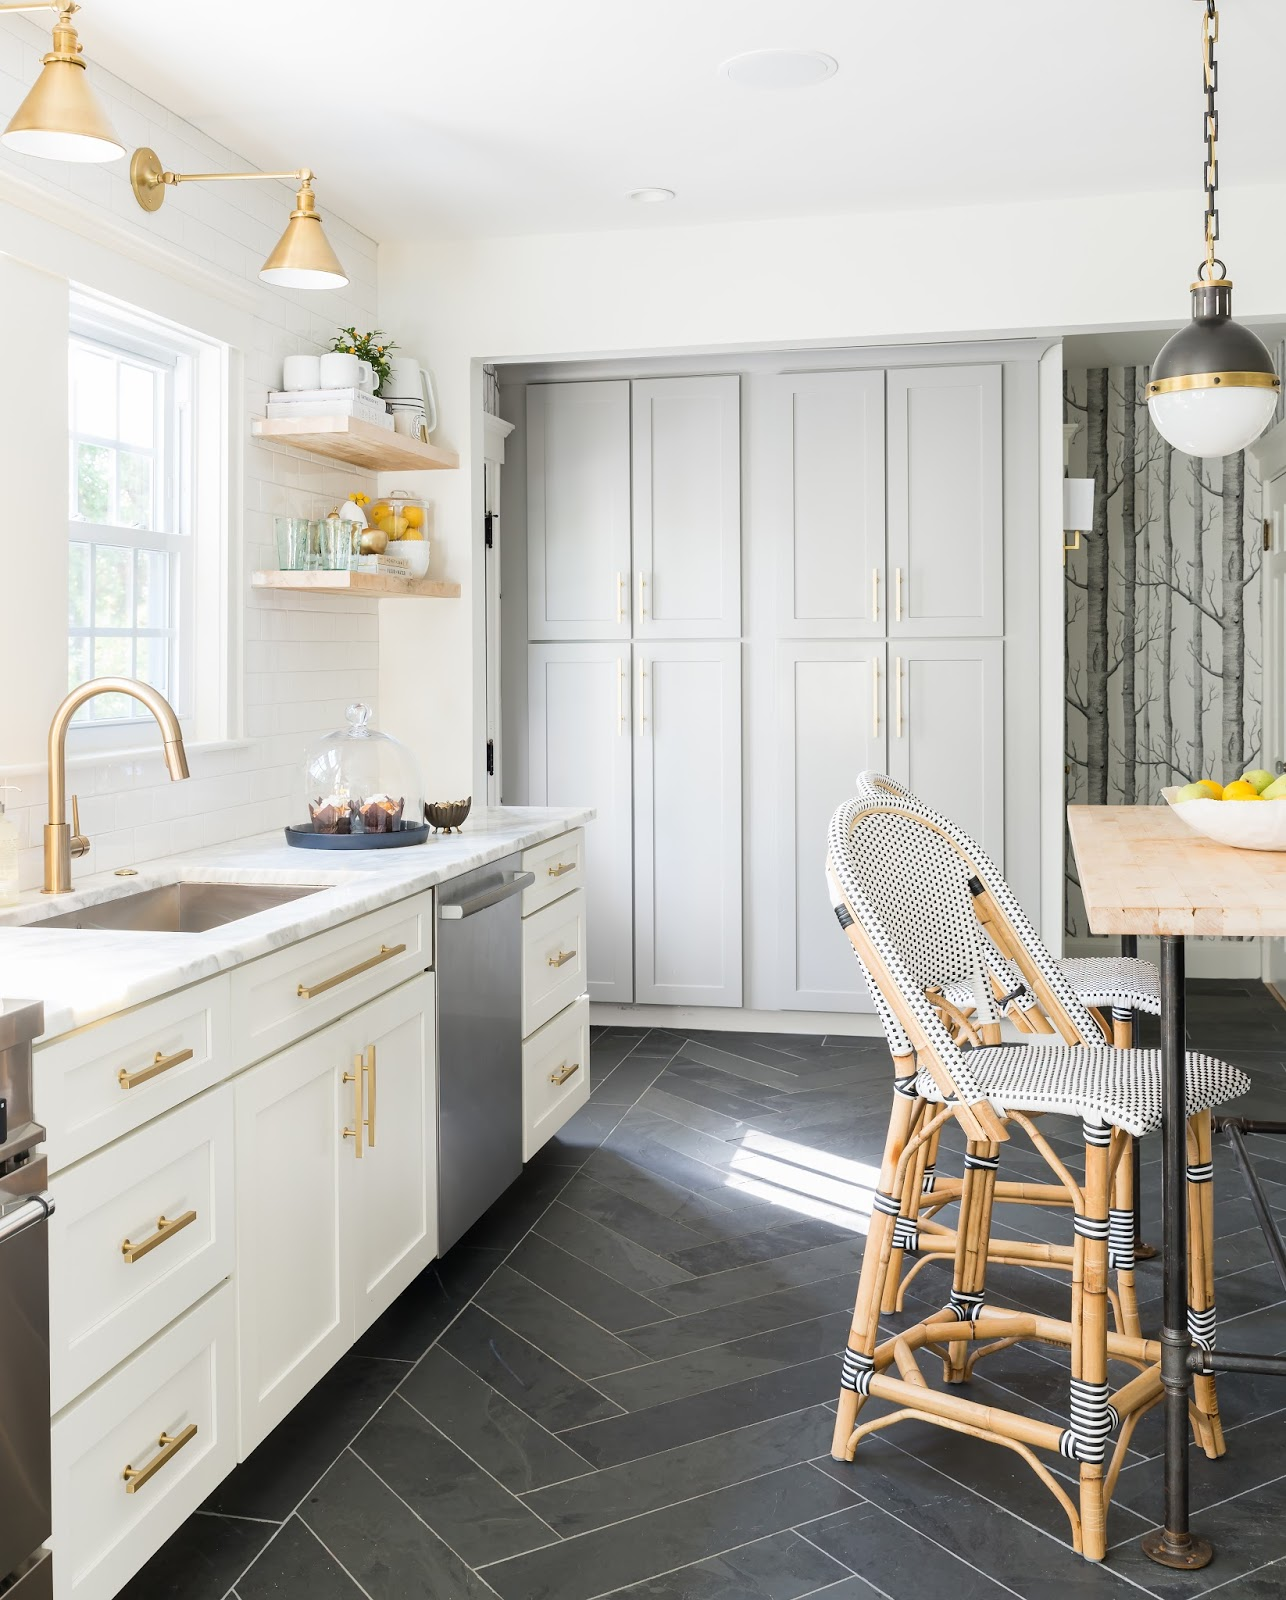 S / N: OUR KITCHEN RENOVATION